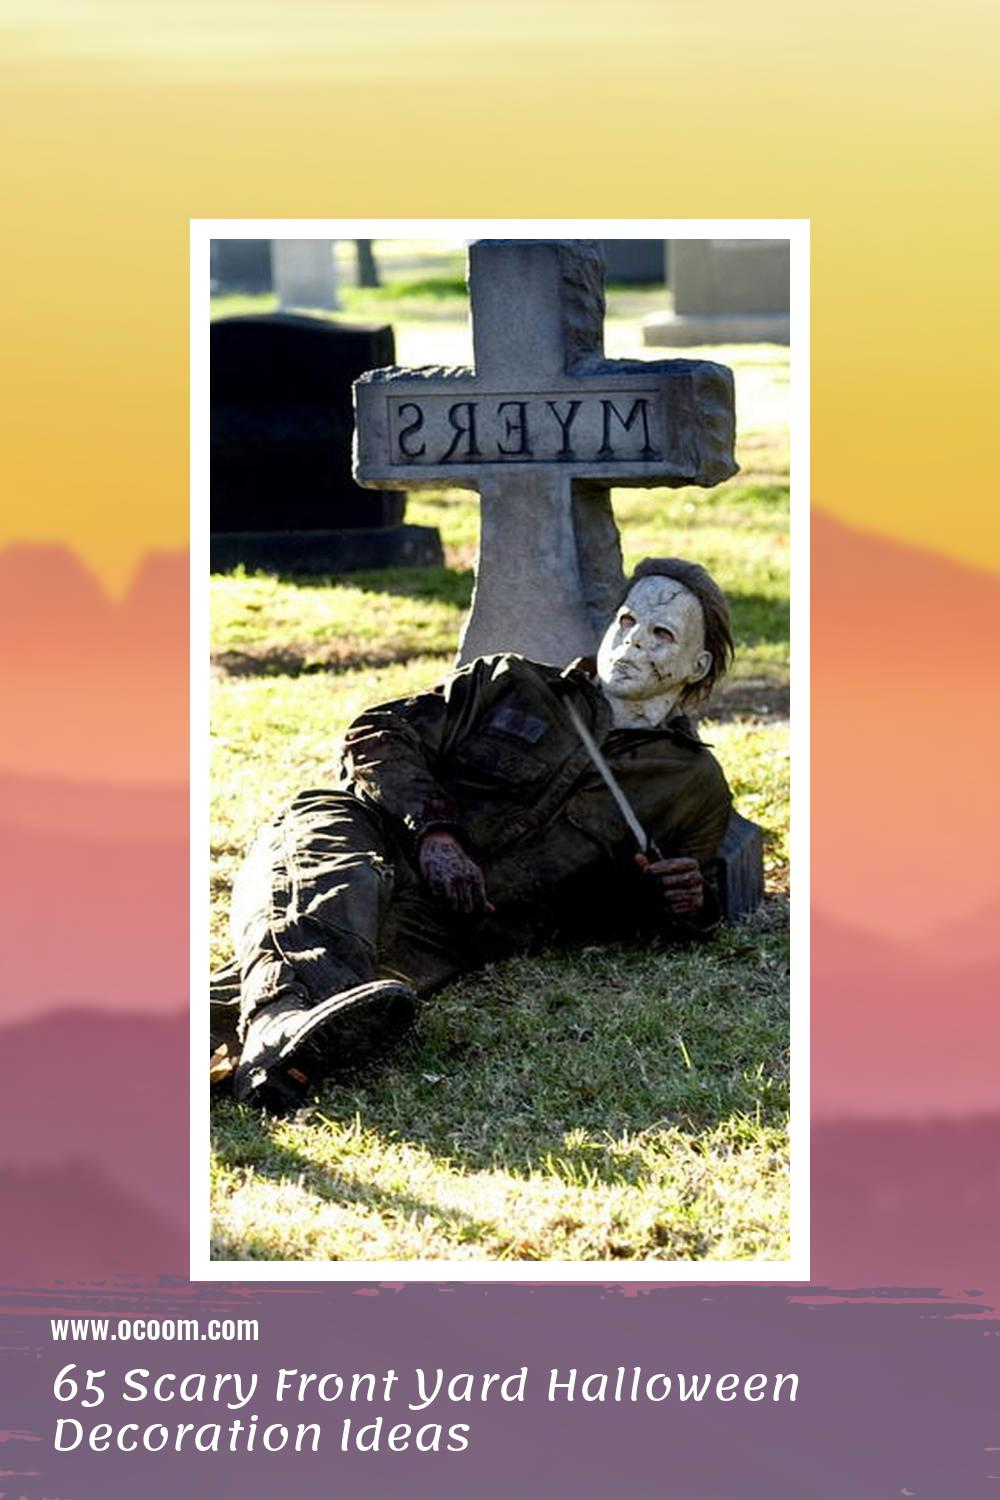 65 Scary Front Yard Halloween Decoration Ideas 36